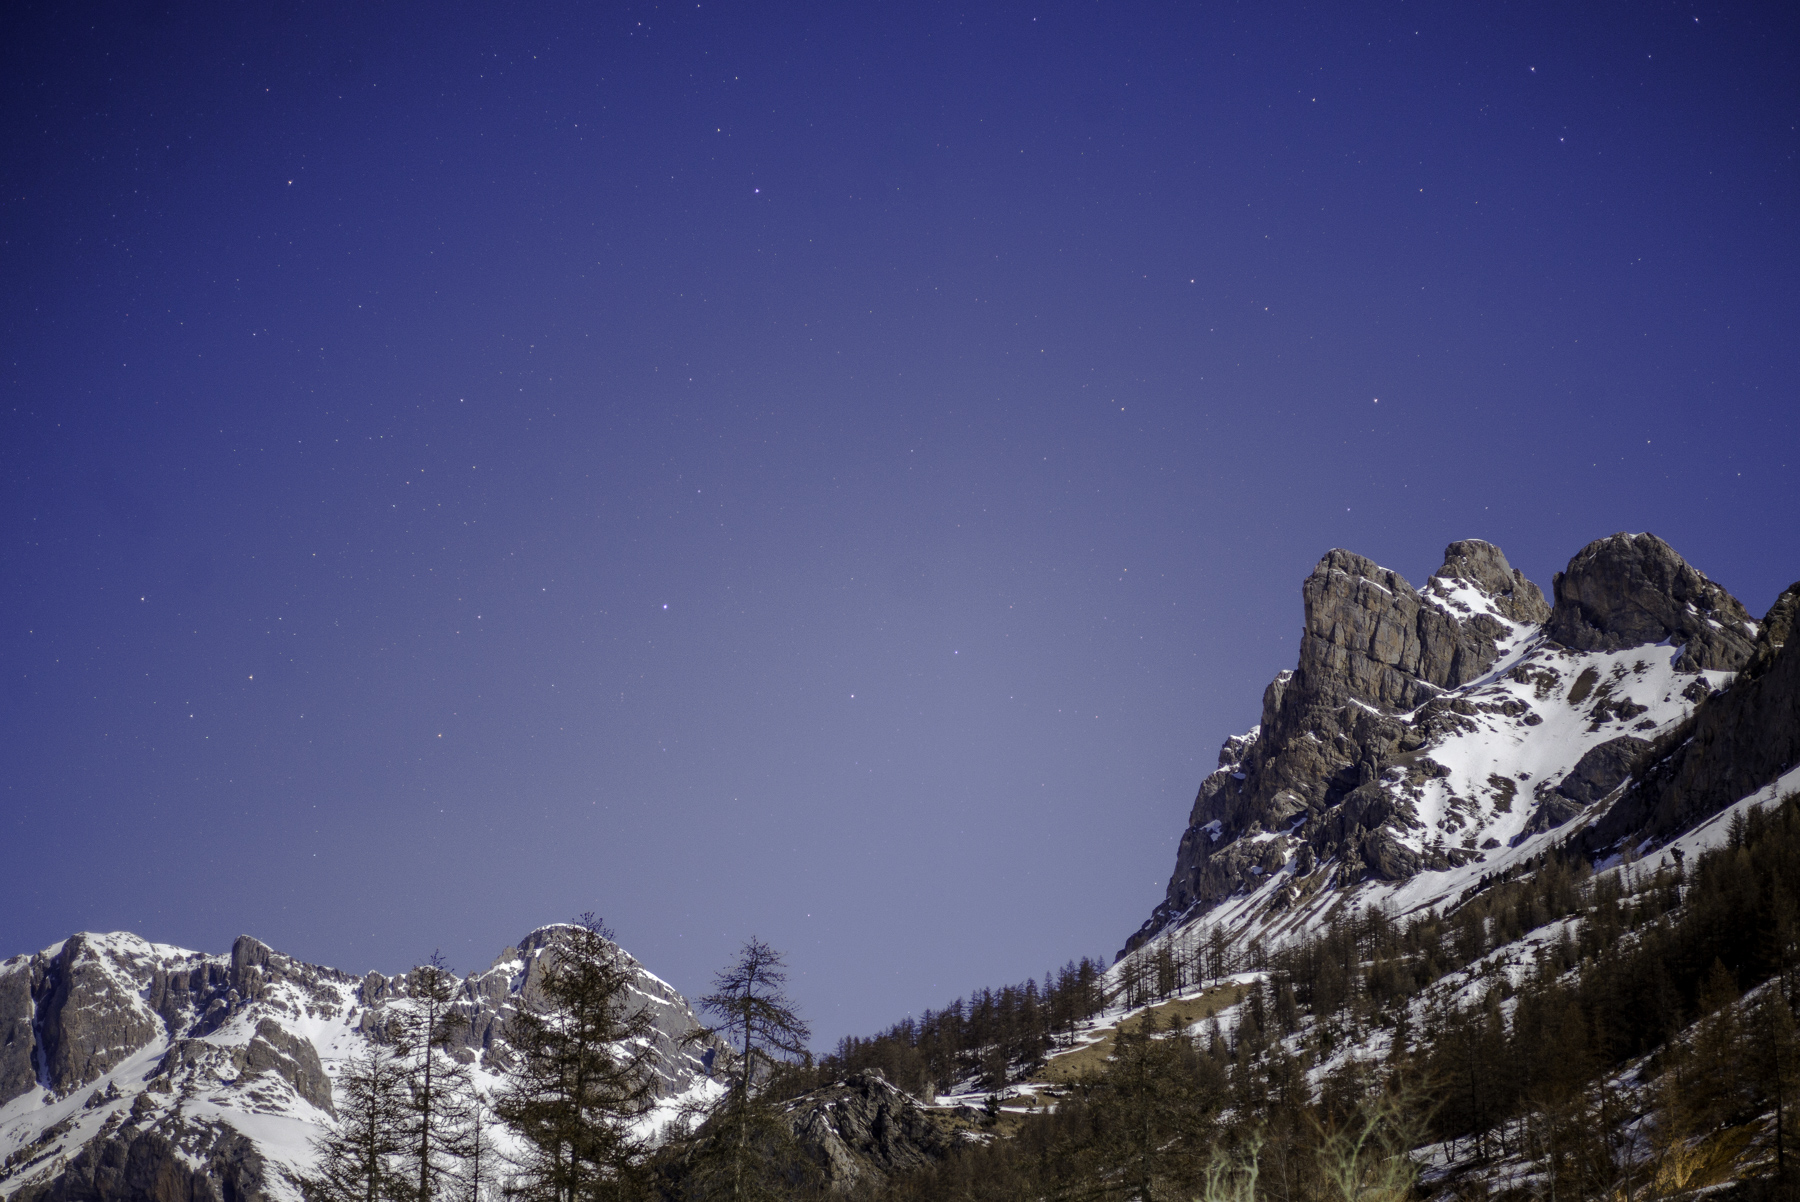 daniel-fine-photo-hyperfocale-620.jpg  snowmoon